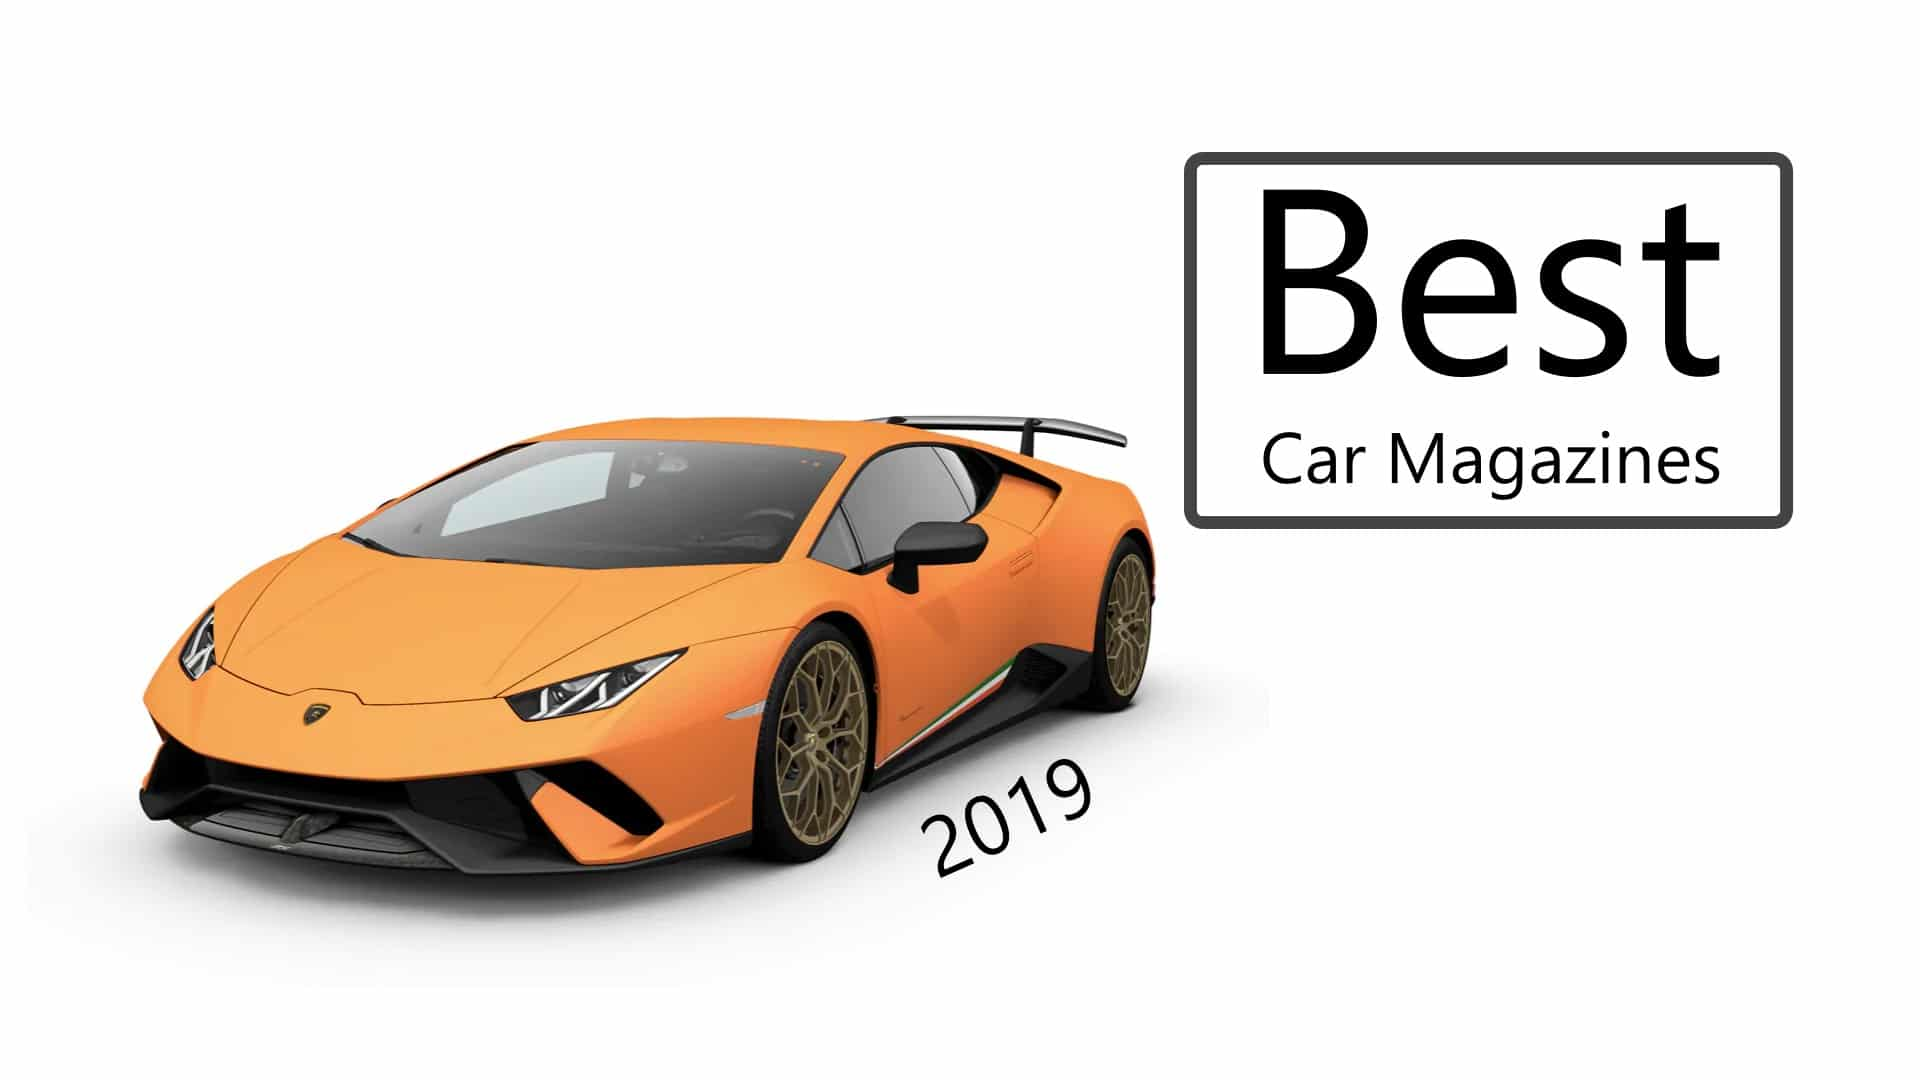 Best Car Magazines